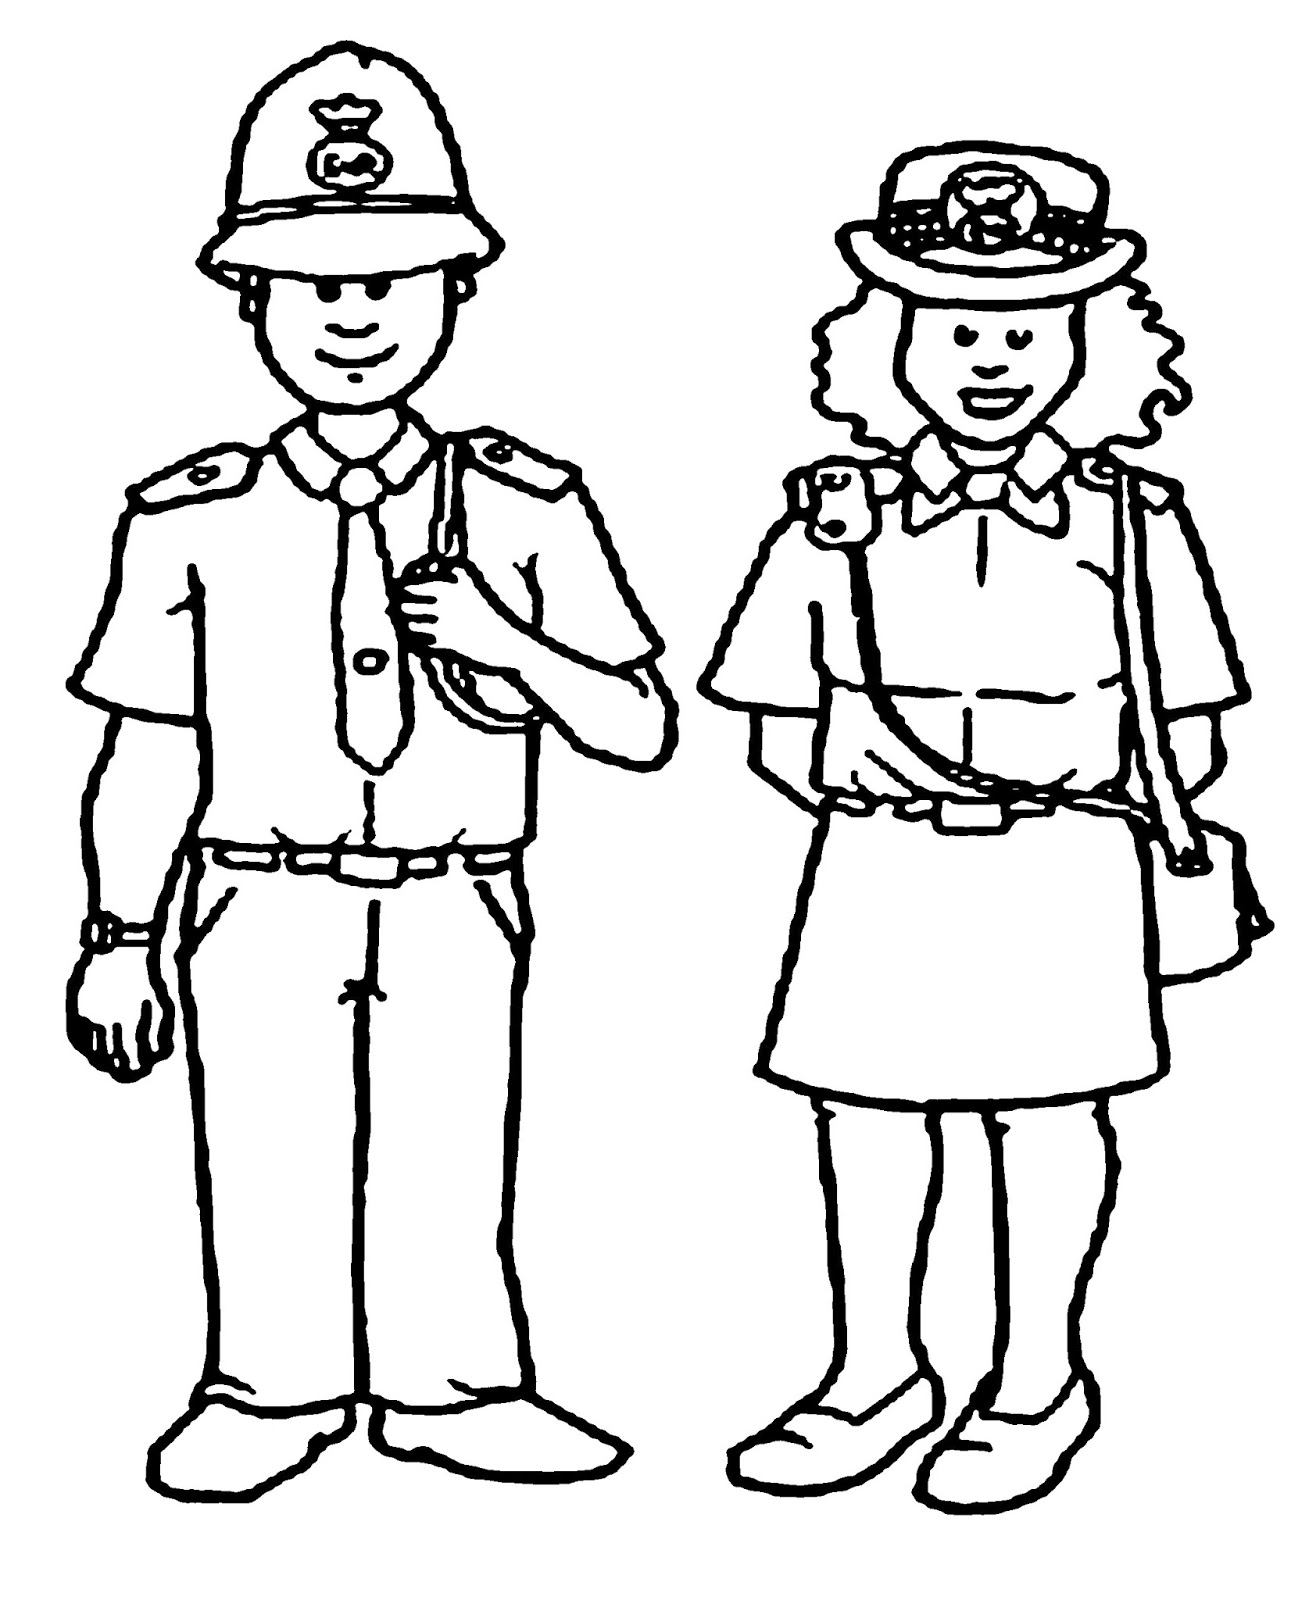 Coloring pages jobs - Source Police Image For Coloring Pages